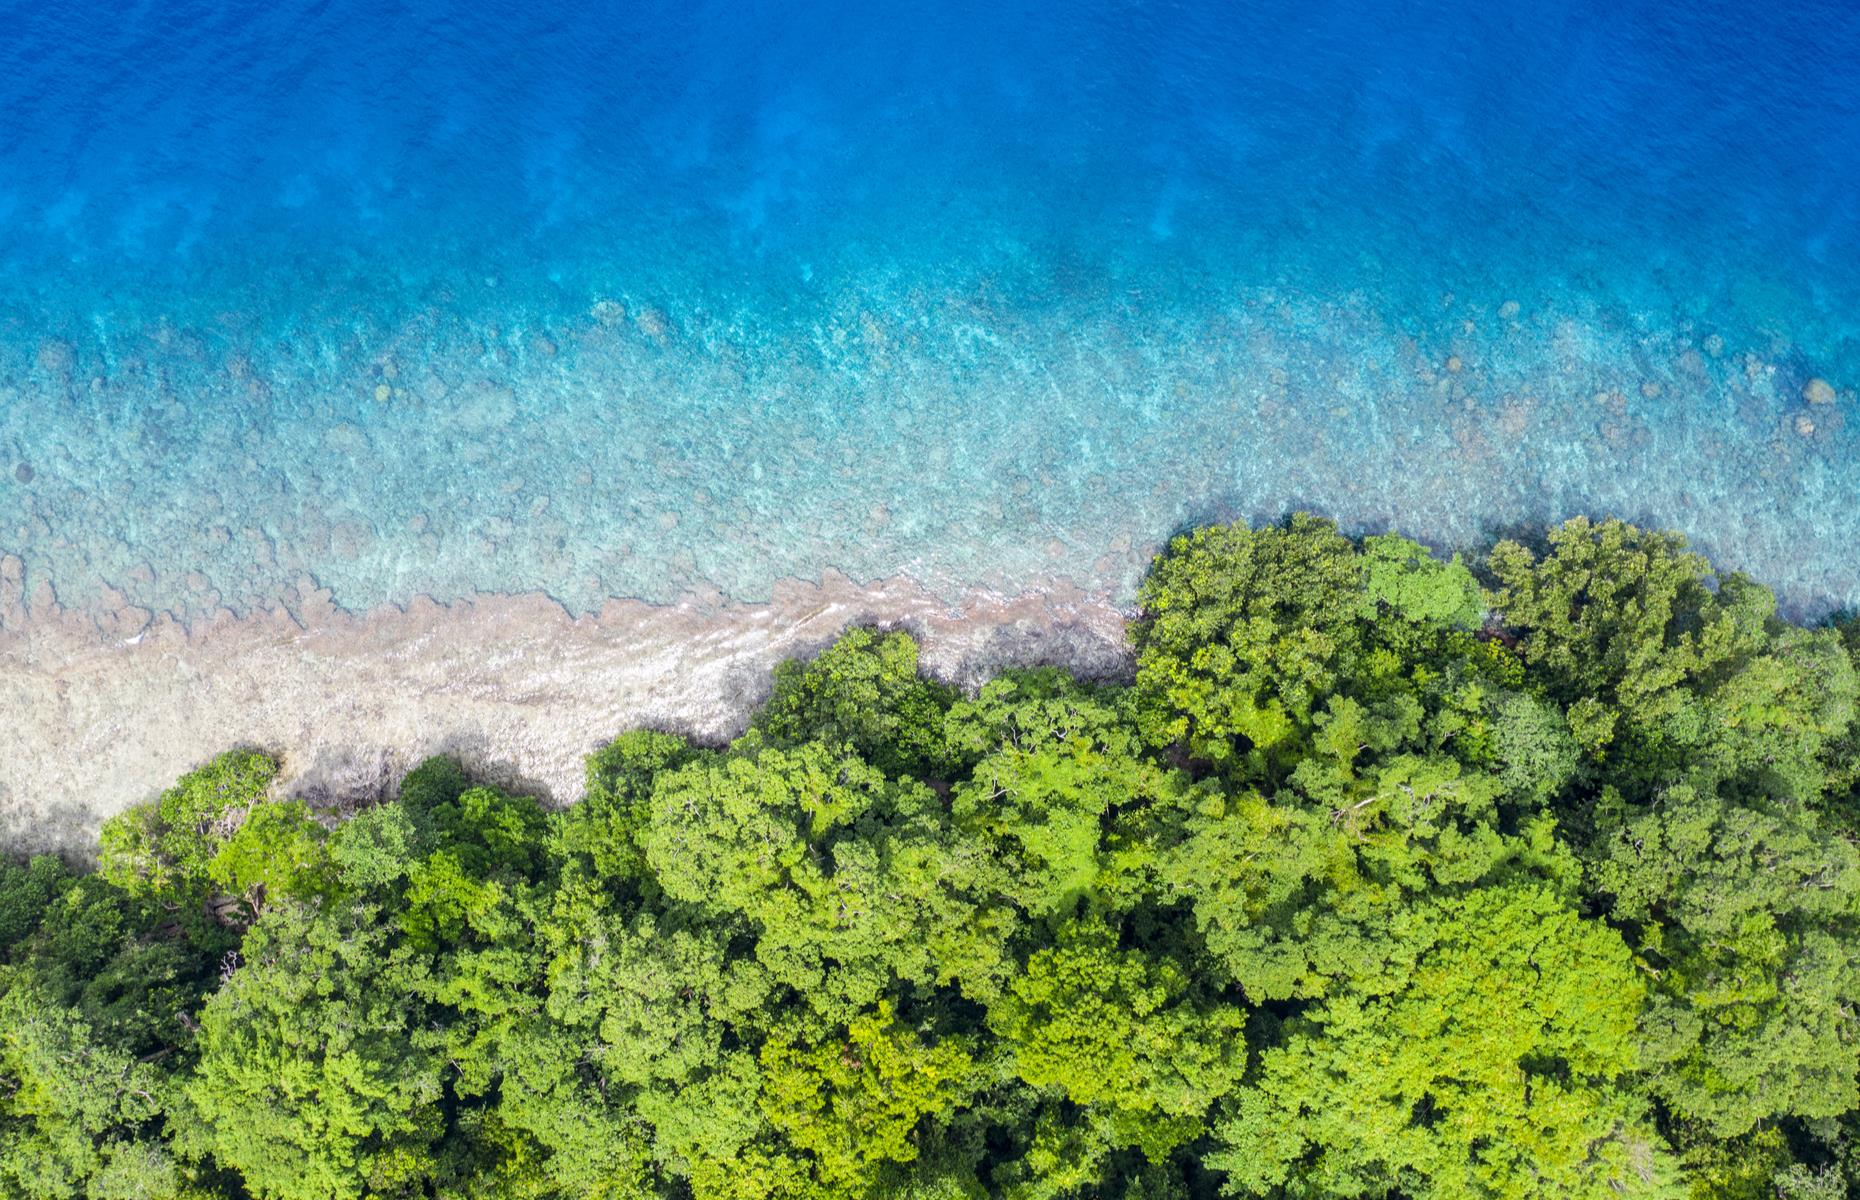 Slide 5 of 26: The island of New Guinea, off Australia, is a tropical paradise and one of the most biologically diverse areas on the planet. Some of the world's key rivers – such as theMamberamo – flow through New Guinea's luscious forests.